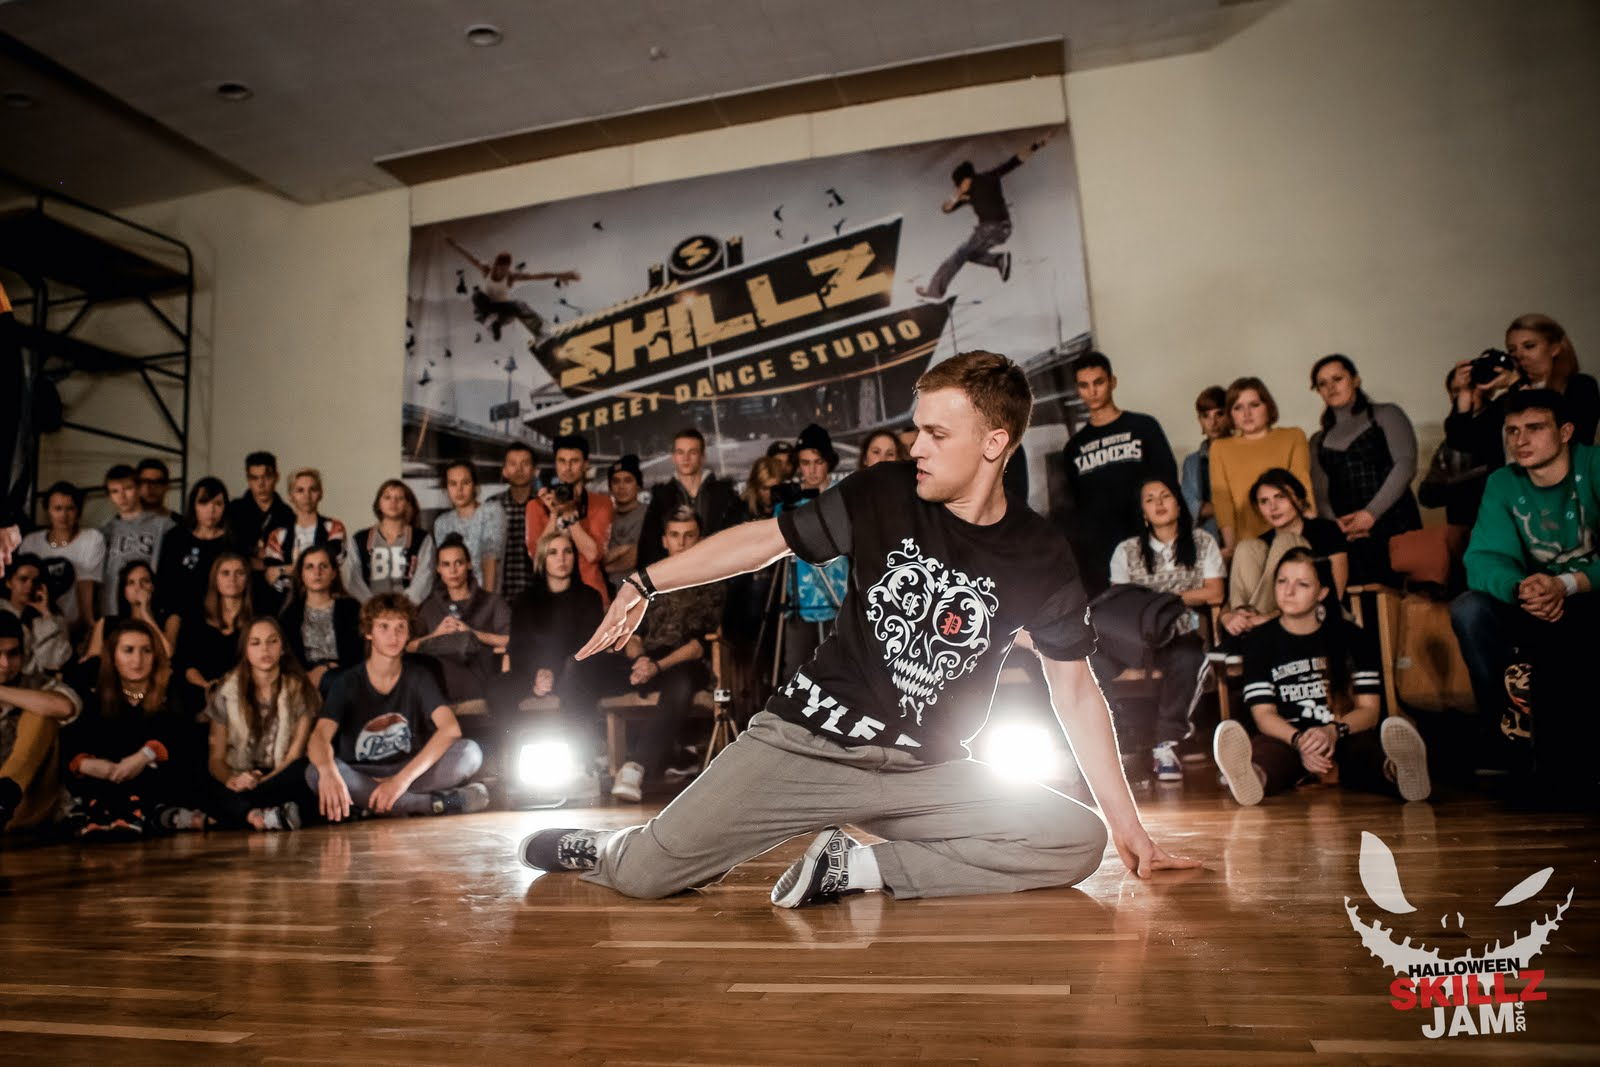 SKILLZ Halloween Jam Battles - a_MG_2229.jpg